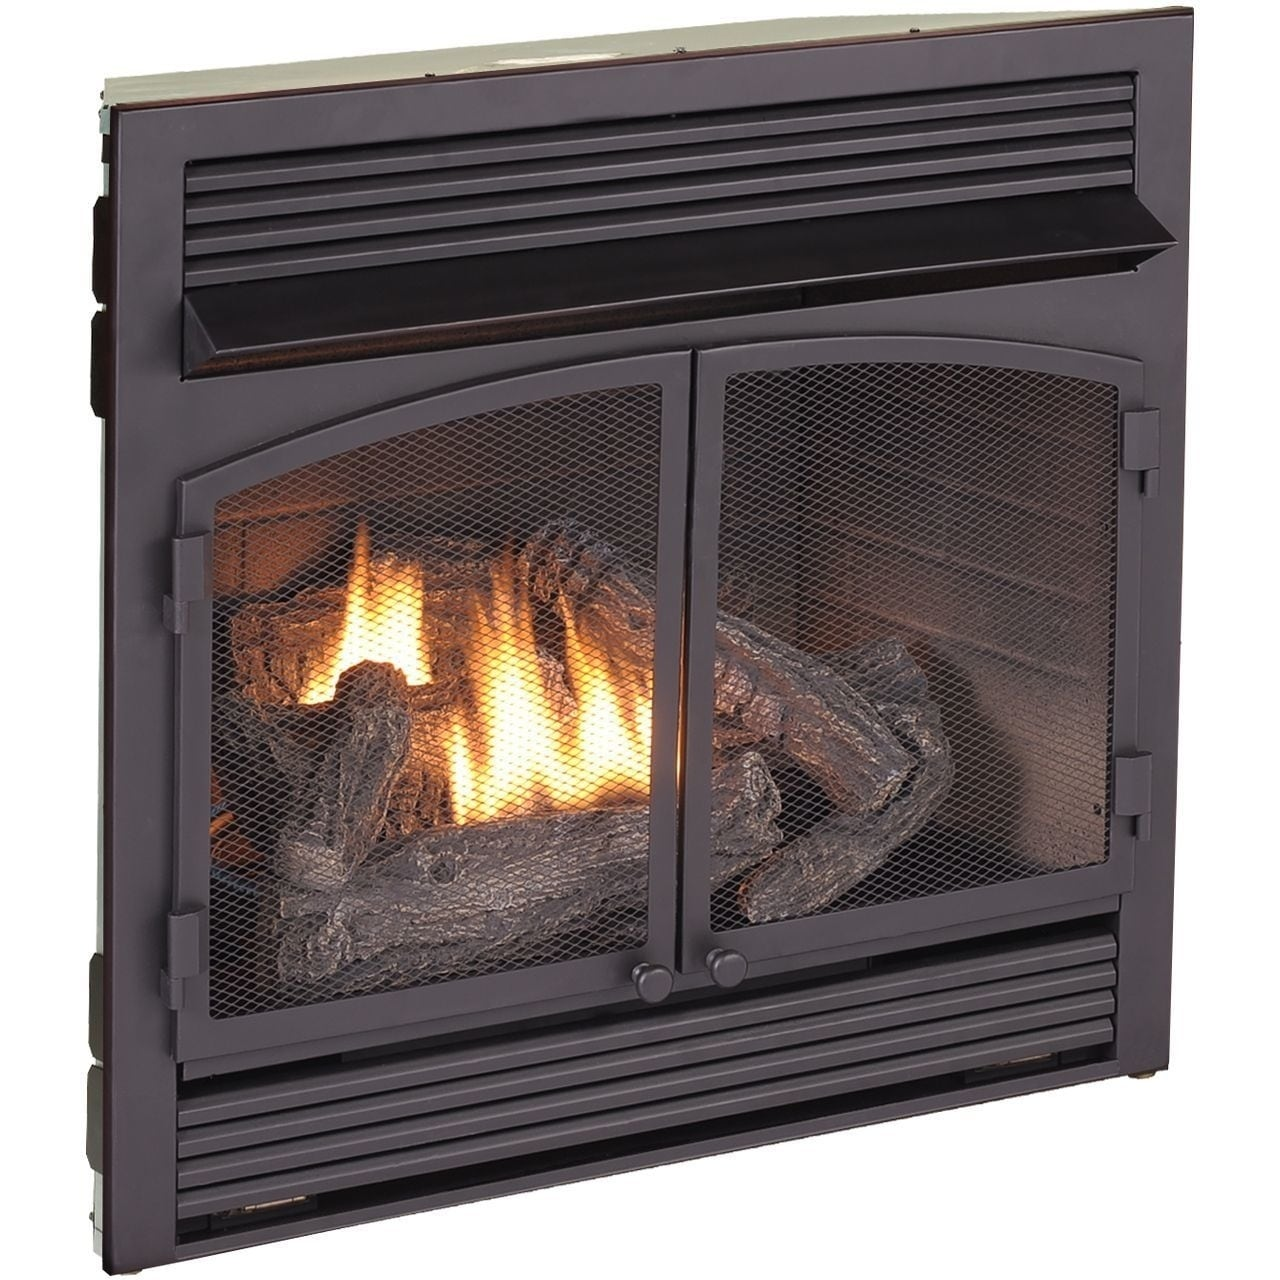 natural free fireplace logs gas vent builder ideas remote ventless on with blower about insert control